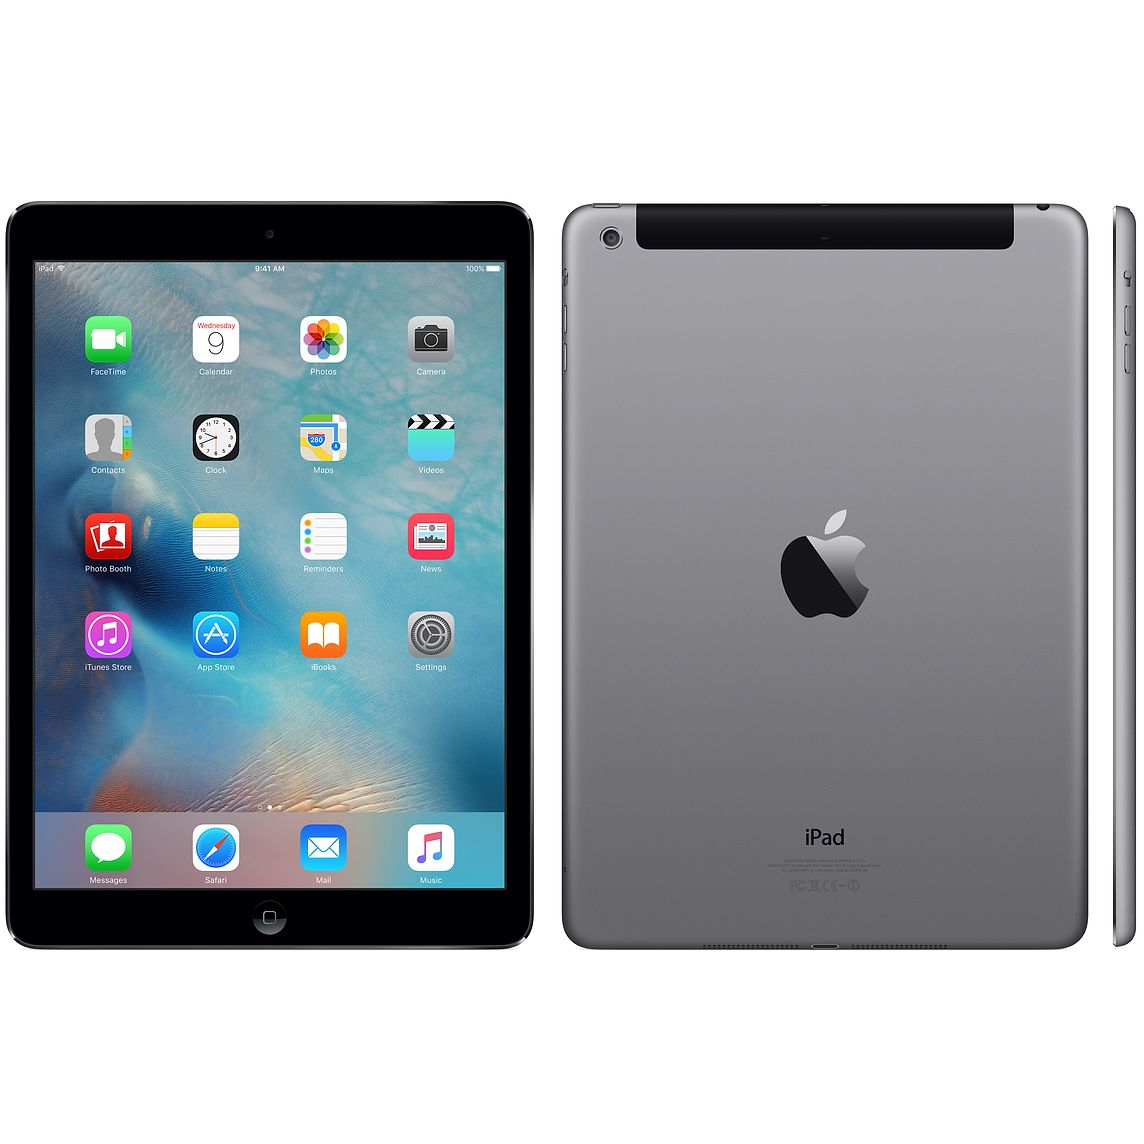 Apple iPad Air 1 128GB Space Grey Cellular